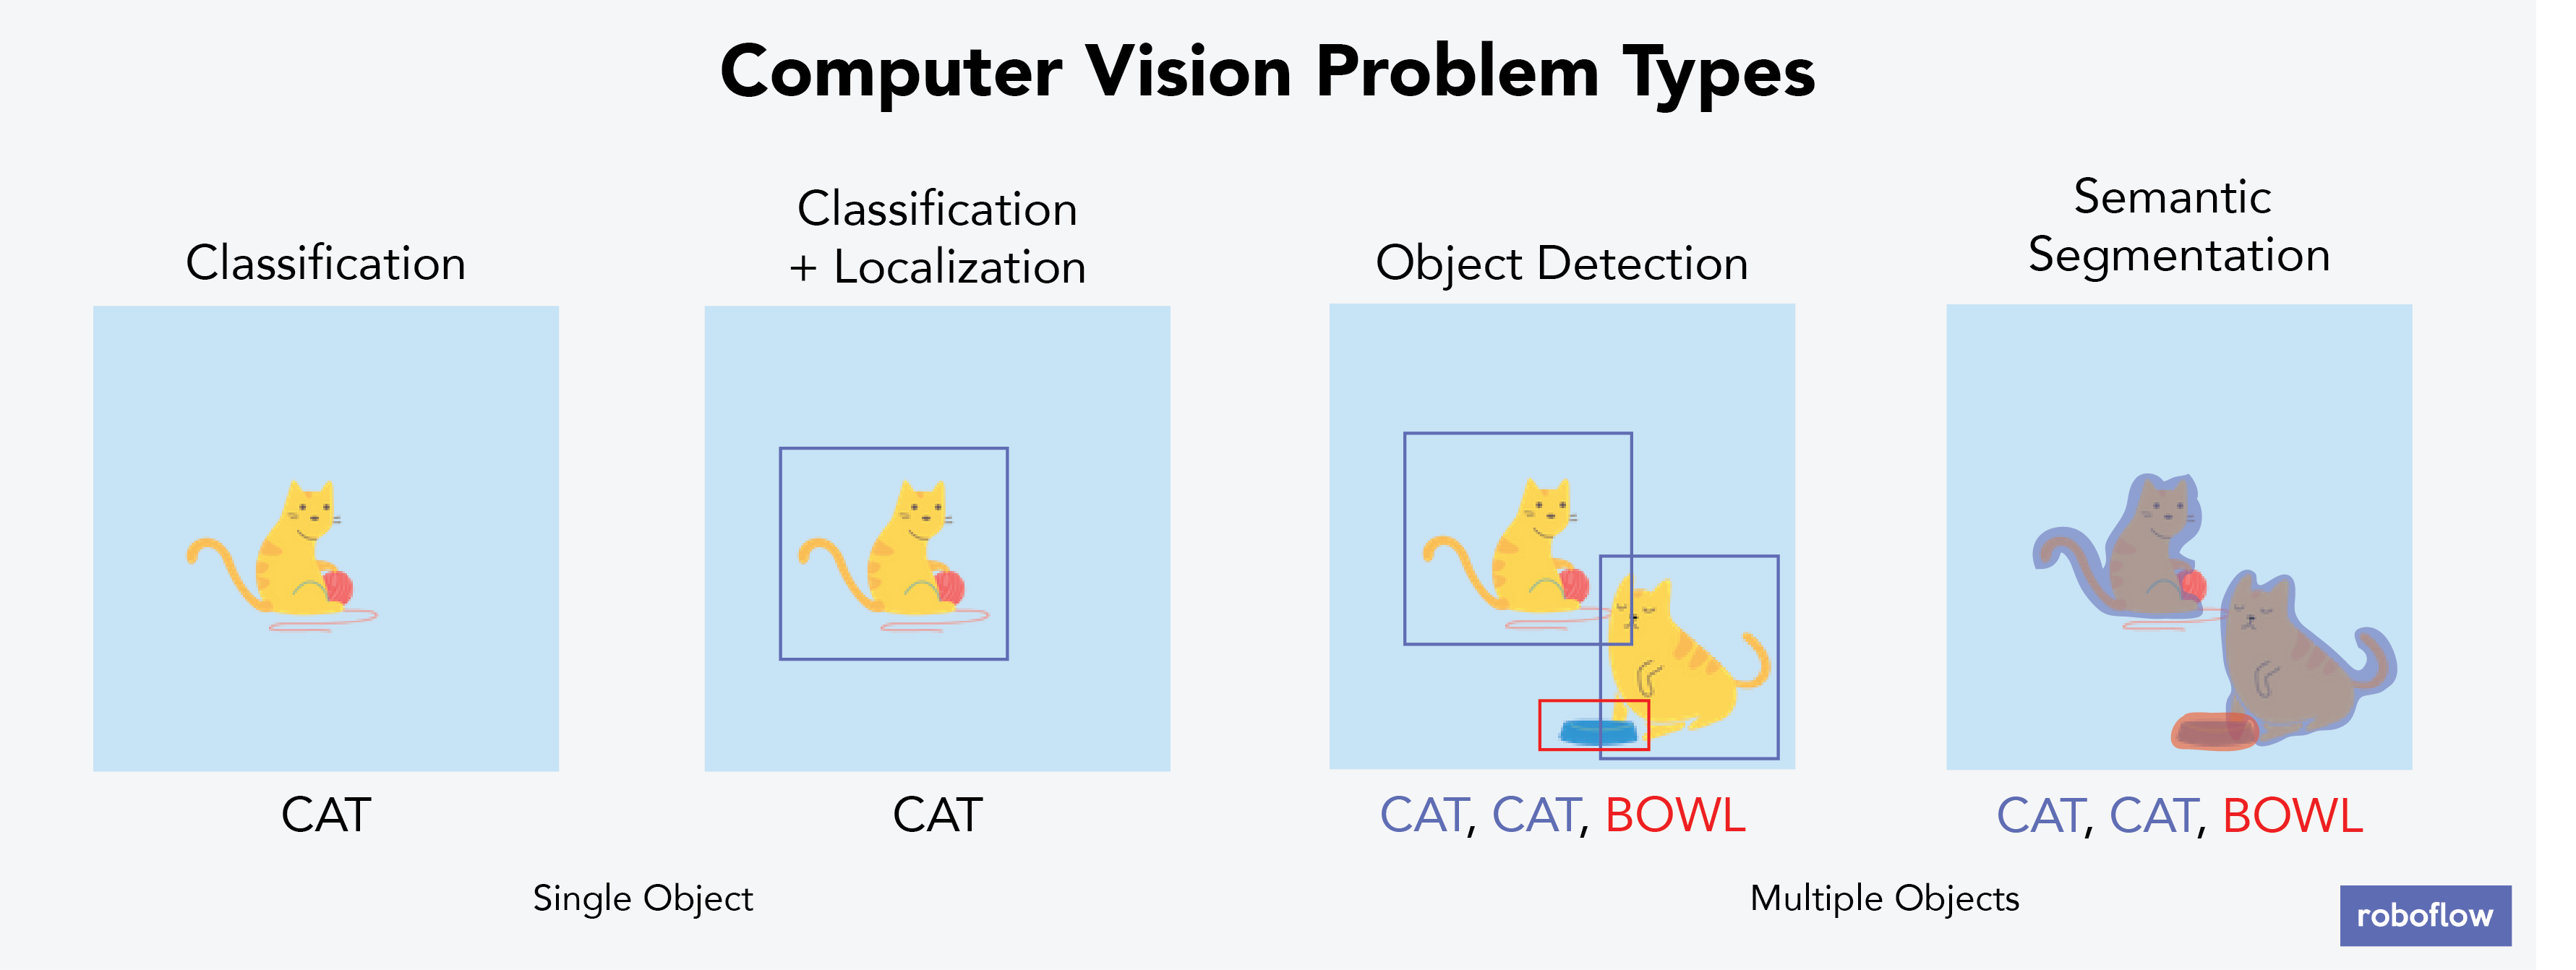 Computer Vision Problem Types (Classification, Classification + Localization, Object Detection, Semantic Segmentation)